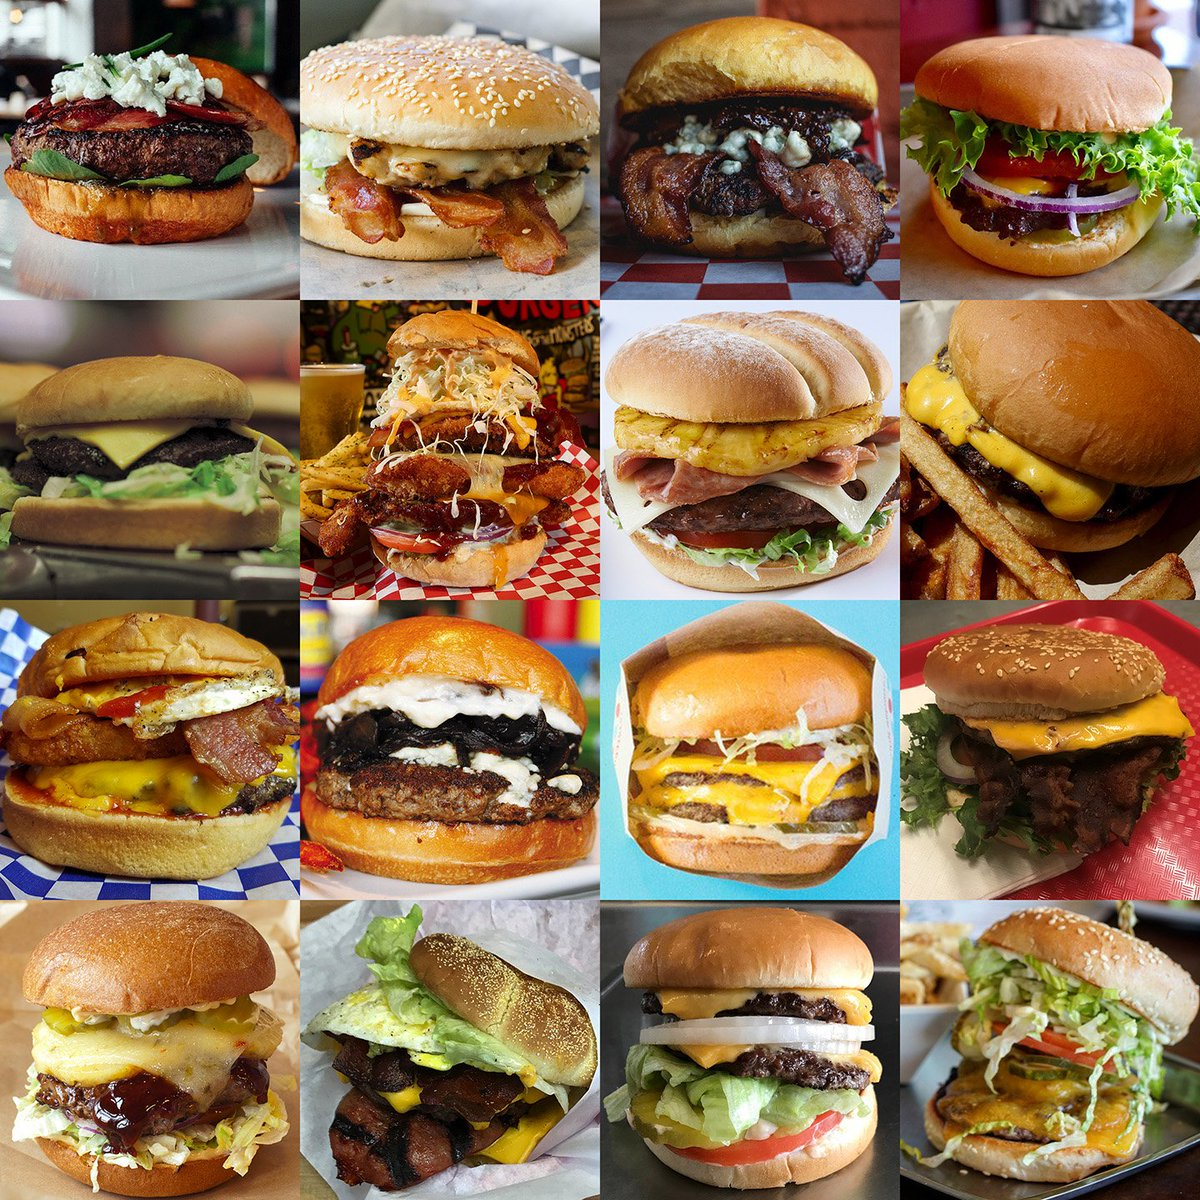 The Seattle Times On Twitter Where S Best Burger Restaurant In Area 16 Restaurants Remain Our Seaburgerbattle Compeion And